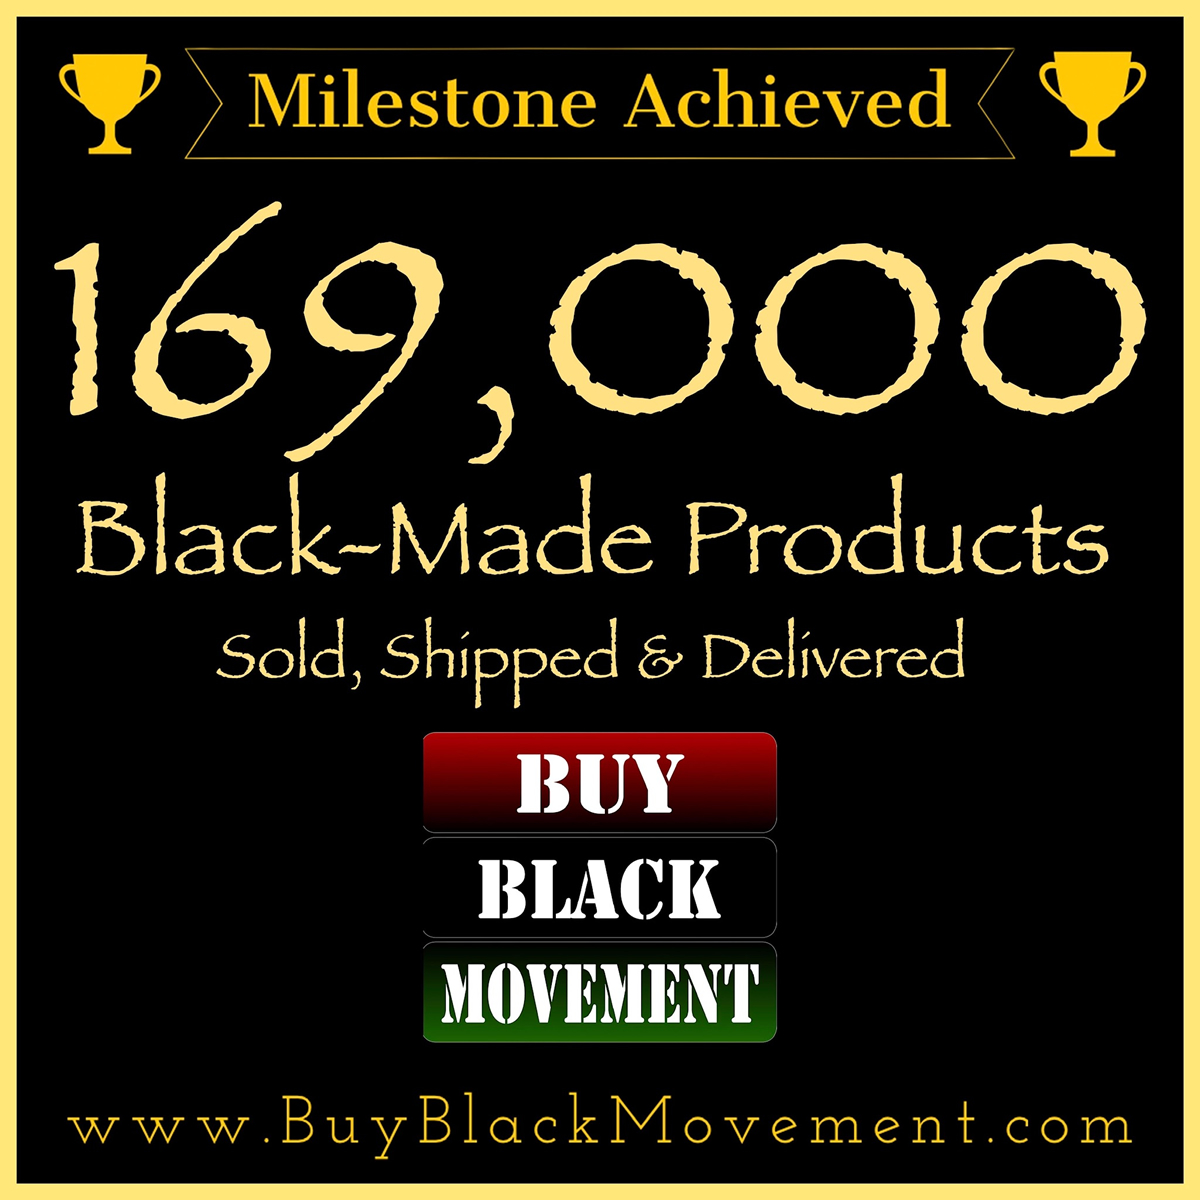 169,000 Products Sold